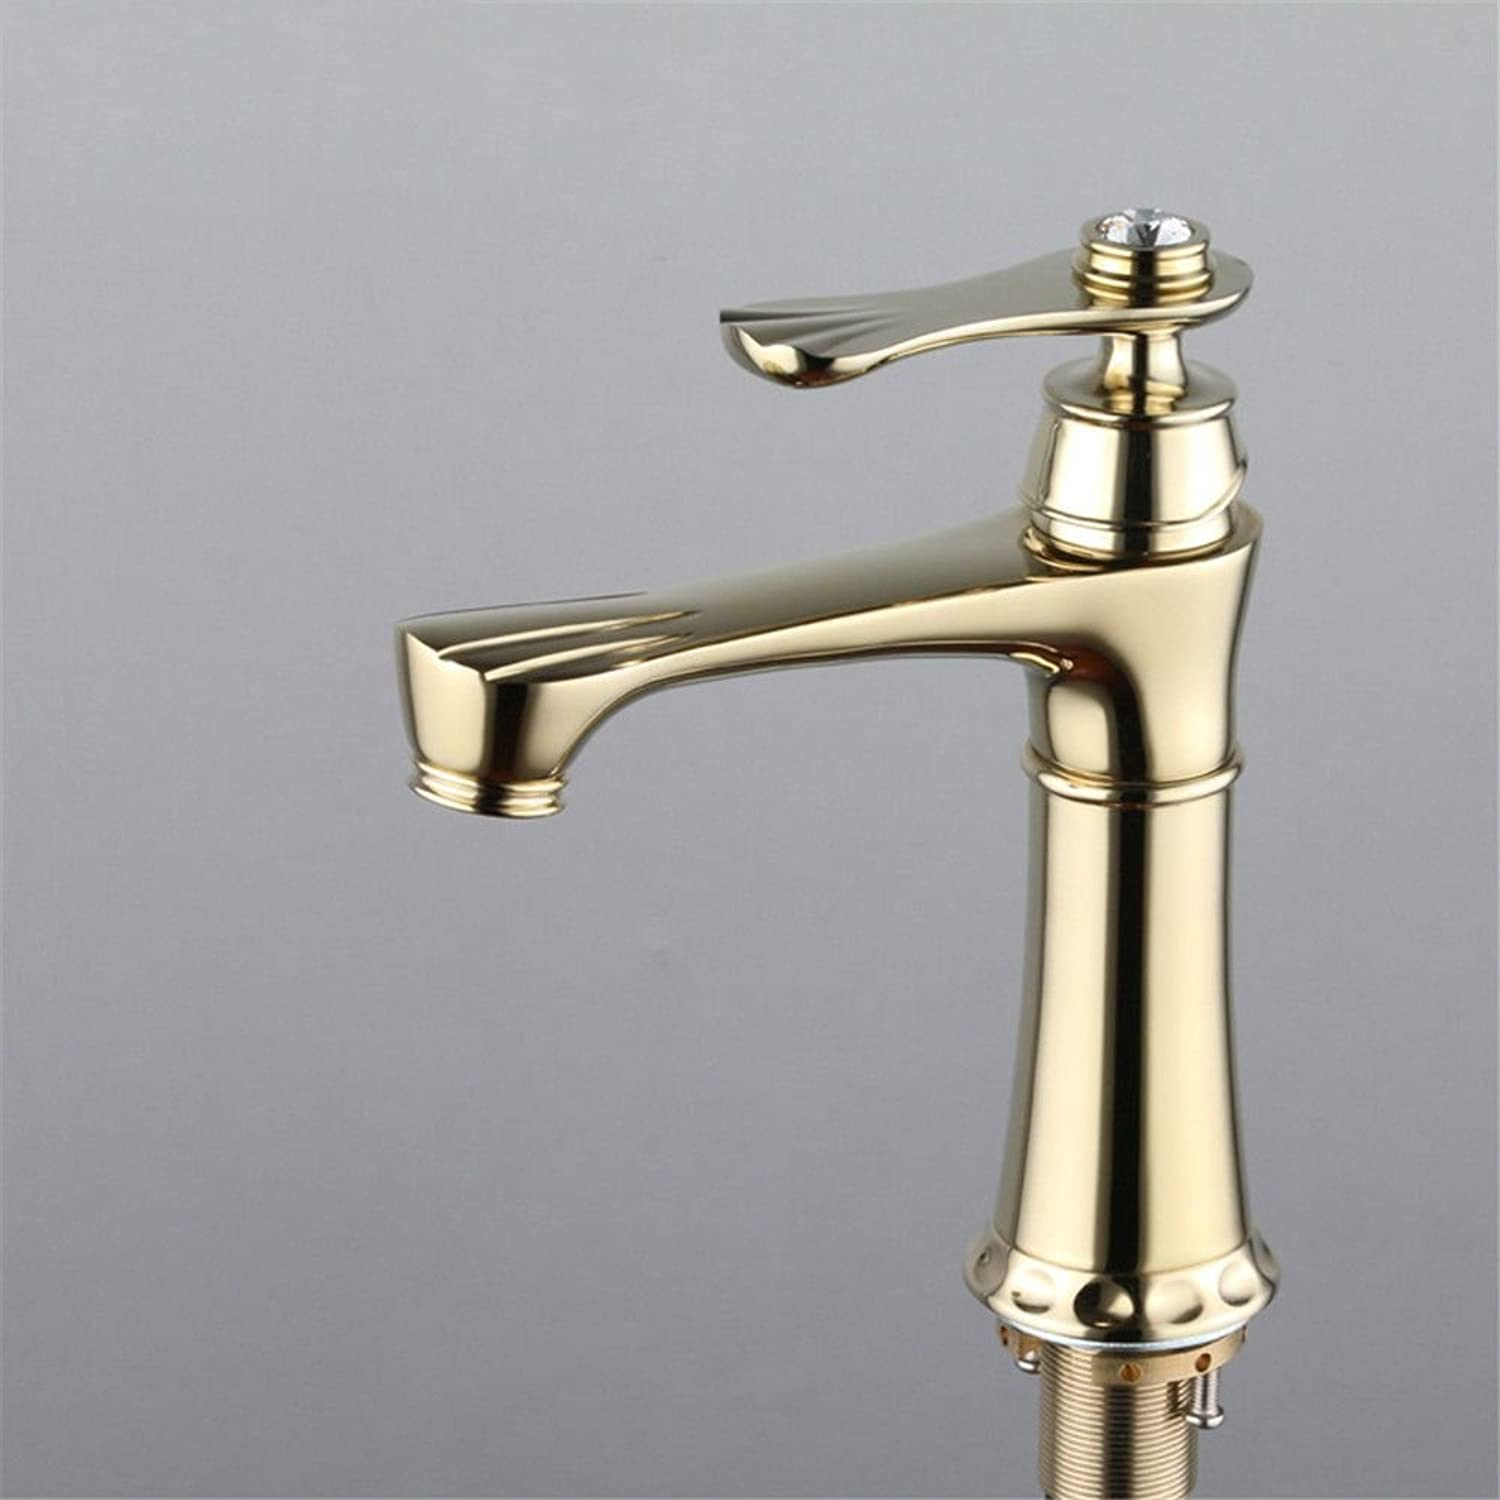 AQMMi Basin Sink Mixer Tap for Lavatory gold Brass Hot and Cold Water Single Lever Bathroom Vanity Sink Faucet